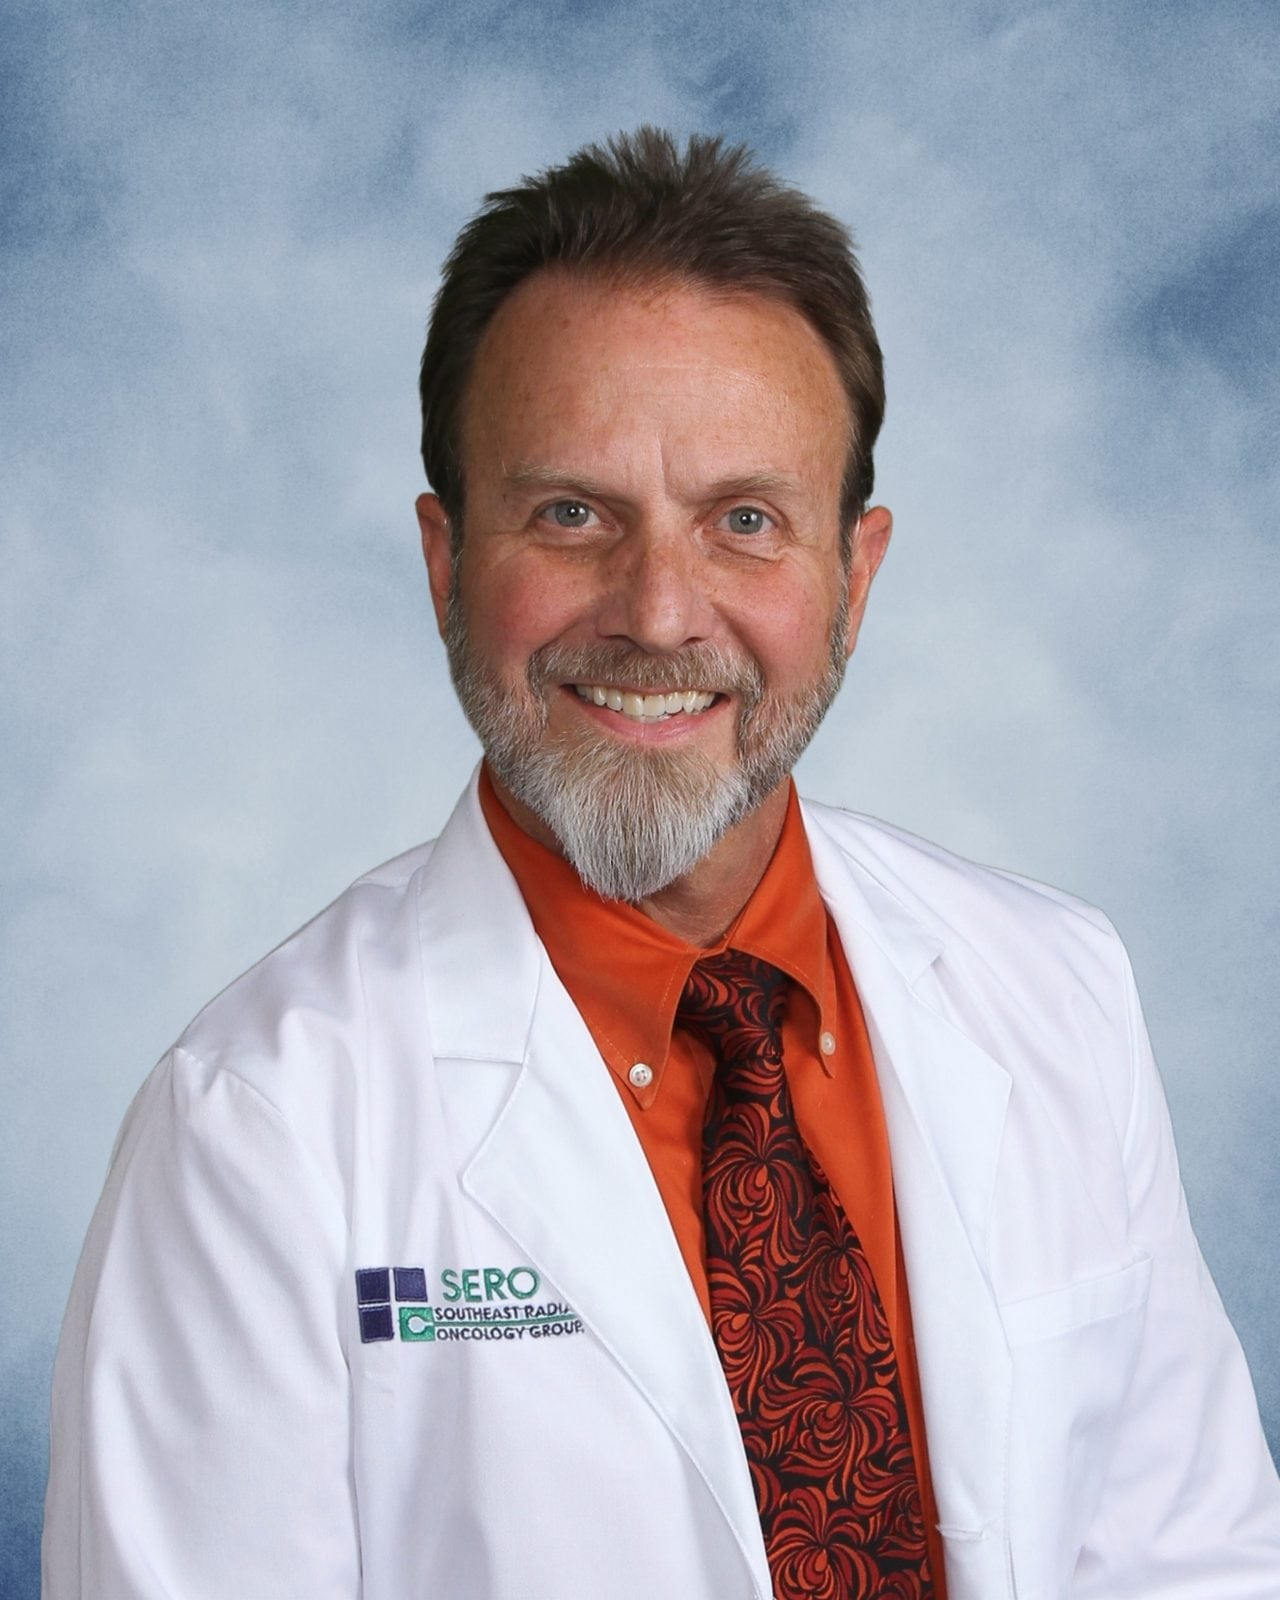 Gregory L Jones Md Southeast Radiation Oncology Group